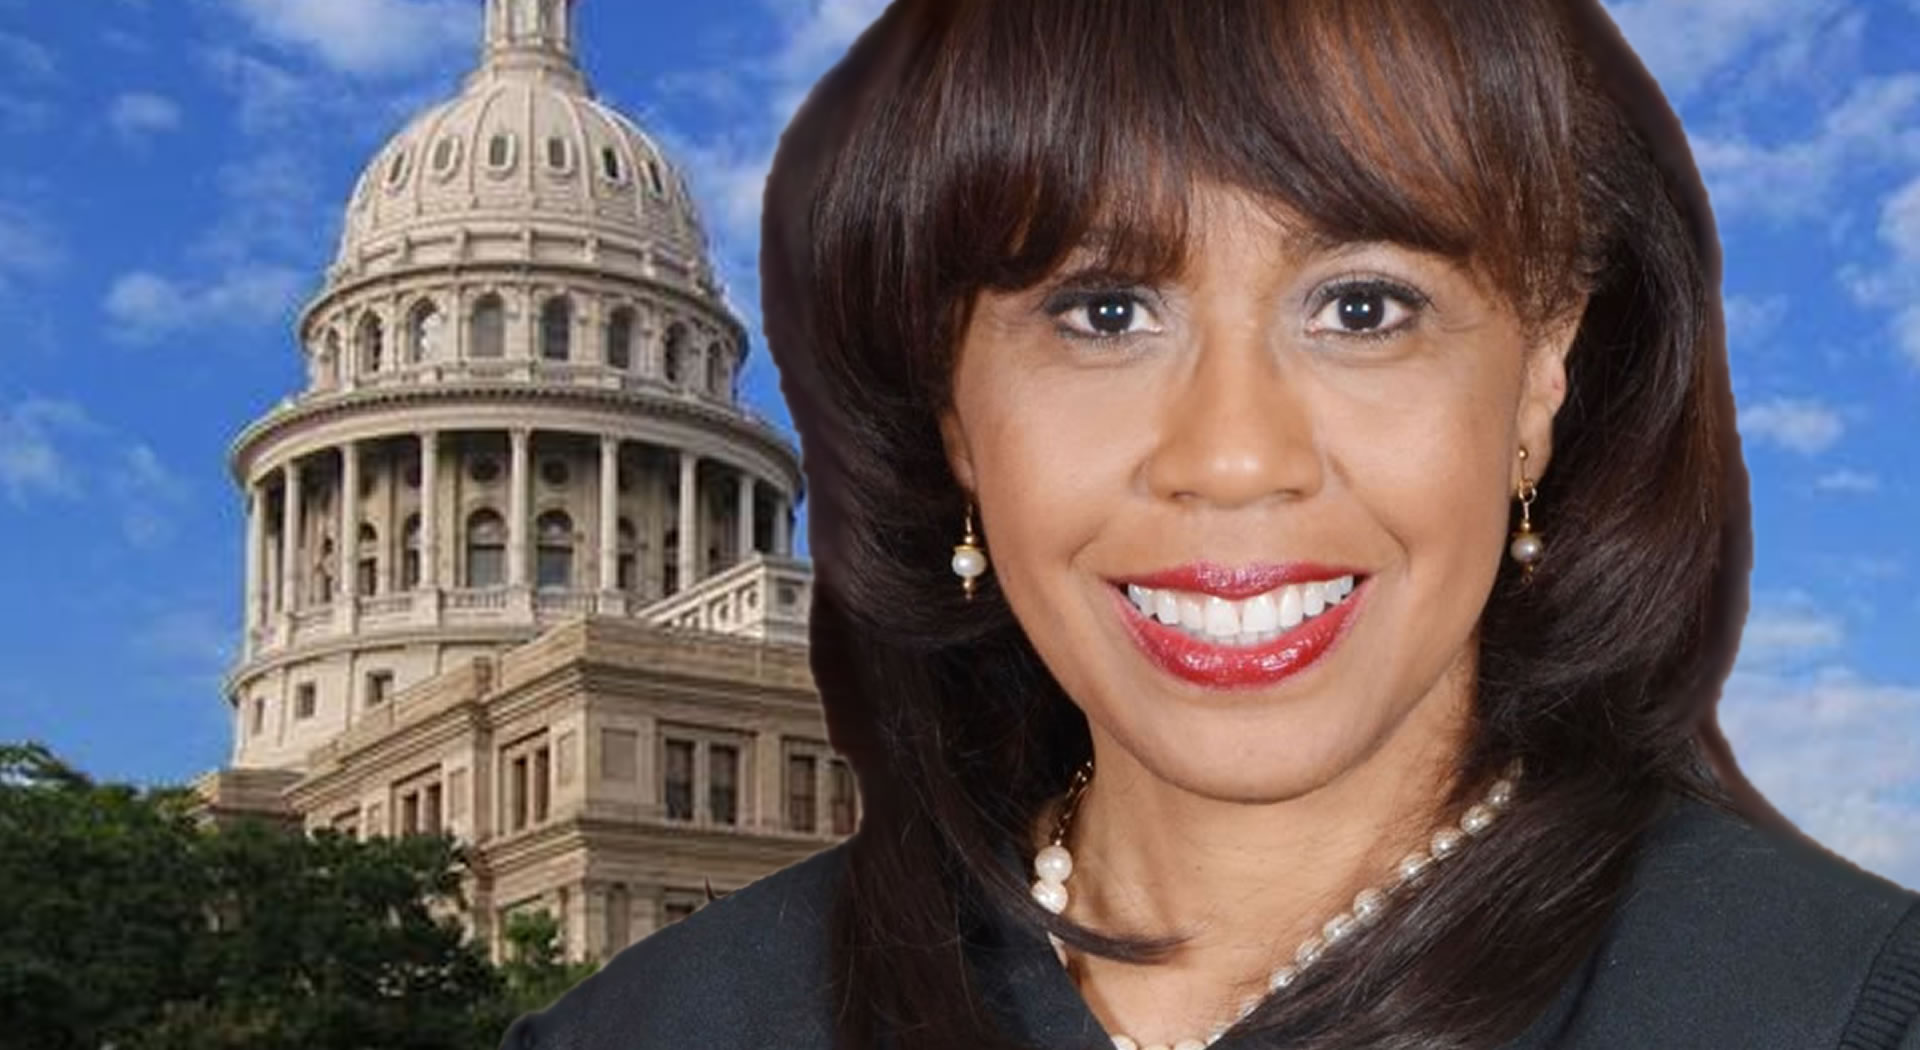 DALLAS--Judge Staci Williams (D-Dallas), candidate for Texas Supreme Court, Place 7, on Monday called out her opponent for continuing to spread false and misleading information concerning alleged endorsements by the  Dallas based  Committee for a Qualified Judiciary.   Williams, a sitting state district judge in her second term on the civil district court bench in Dallas County, said the accusation from her opponent that she was found not qualified by the Committee for a Qualified Judiciary is simply false.